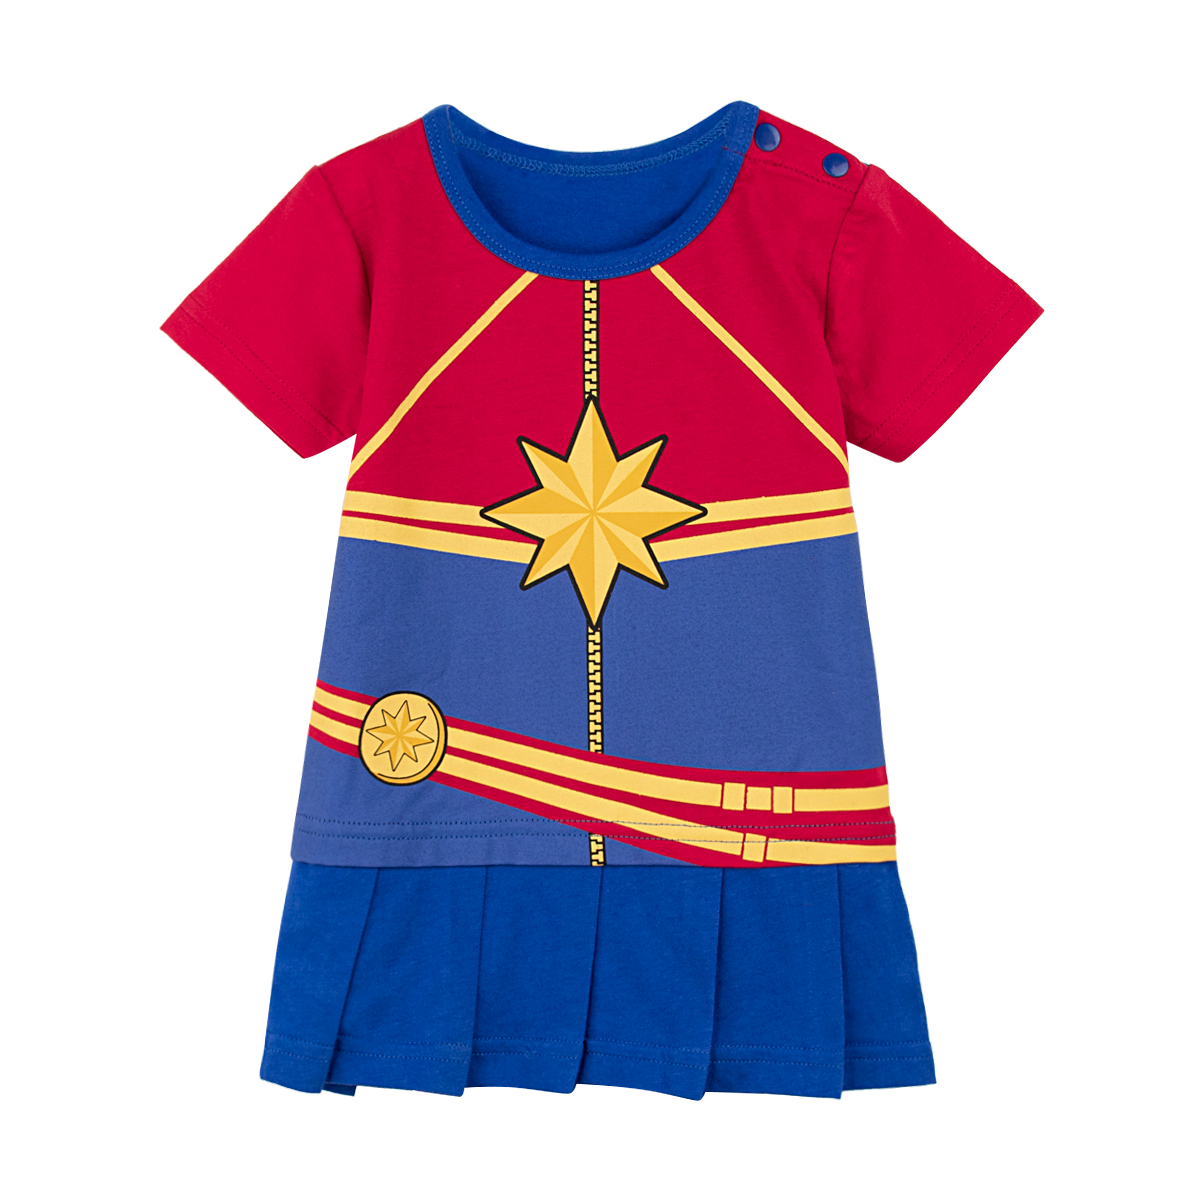 Best Top Superhero Baby Bodysuits Brands And Get Free Shipping Ehibneil4 Air force pilot whose dna was accidentally fused with a kree, which imbued her with superhuman strength, energy projection, and flight. top superhero baby bodysuits brands